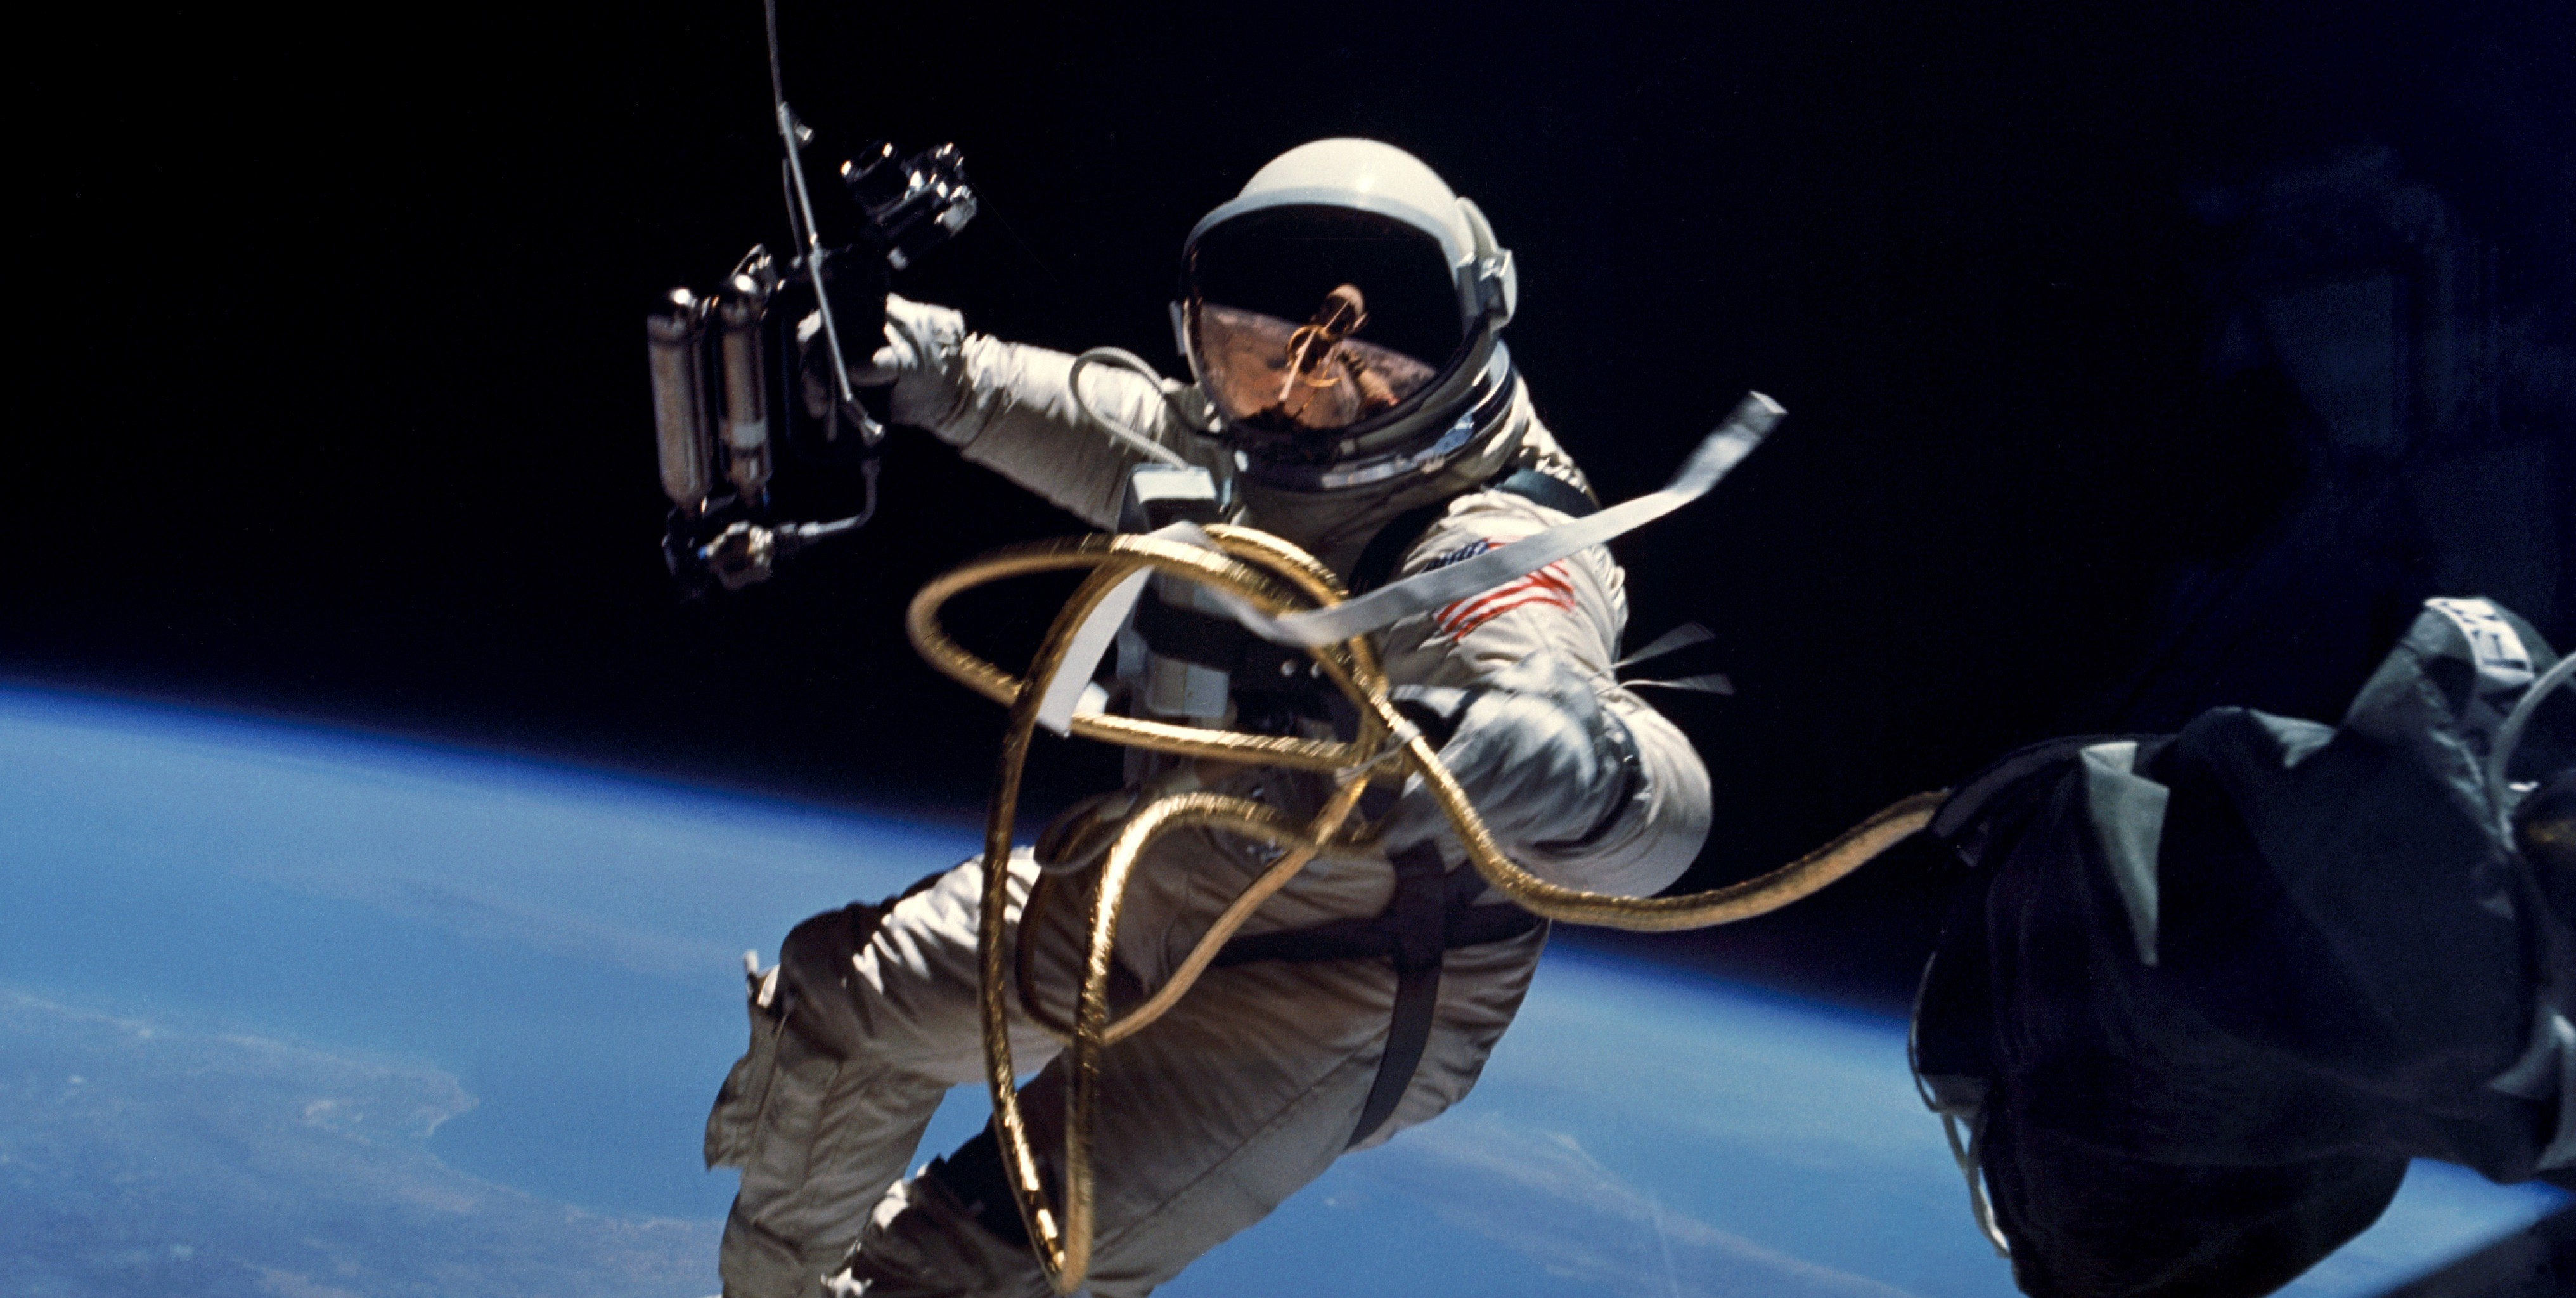 Floating In Space Astronaut Stock Photos amp Pictures